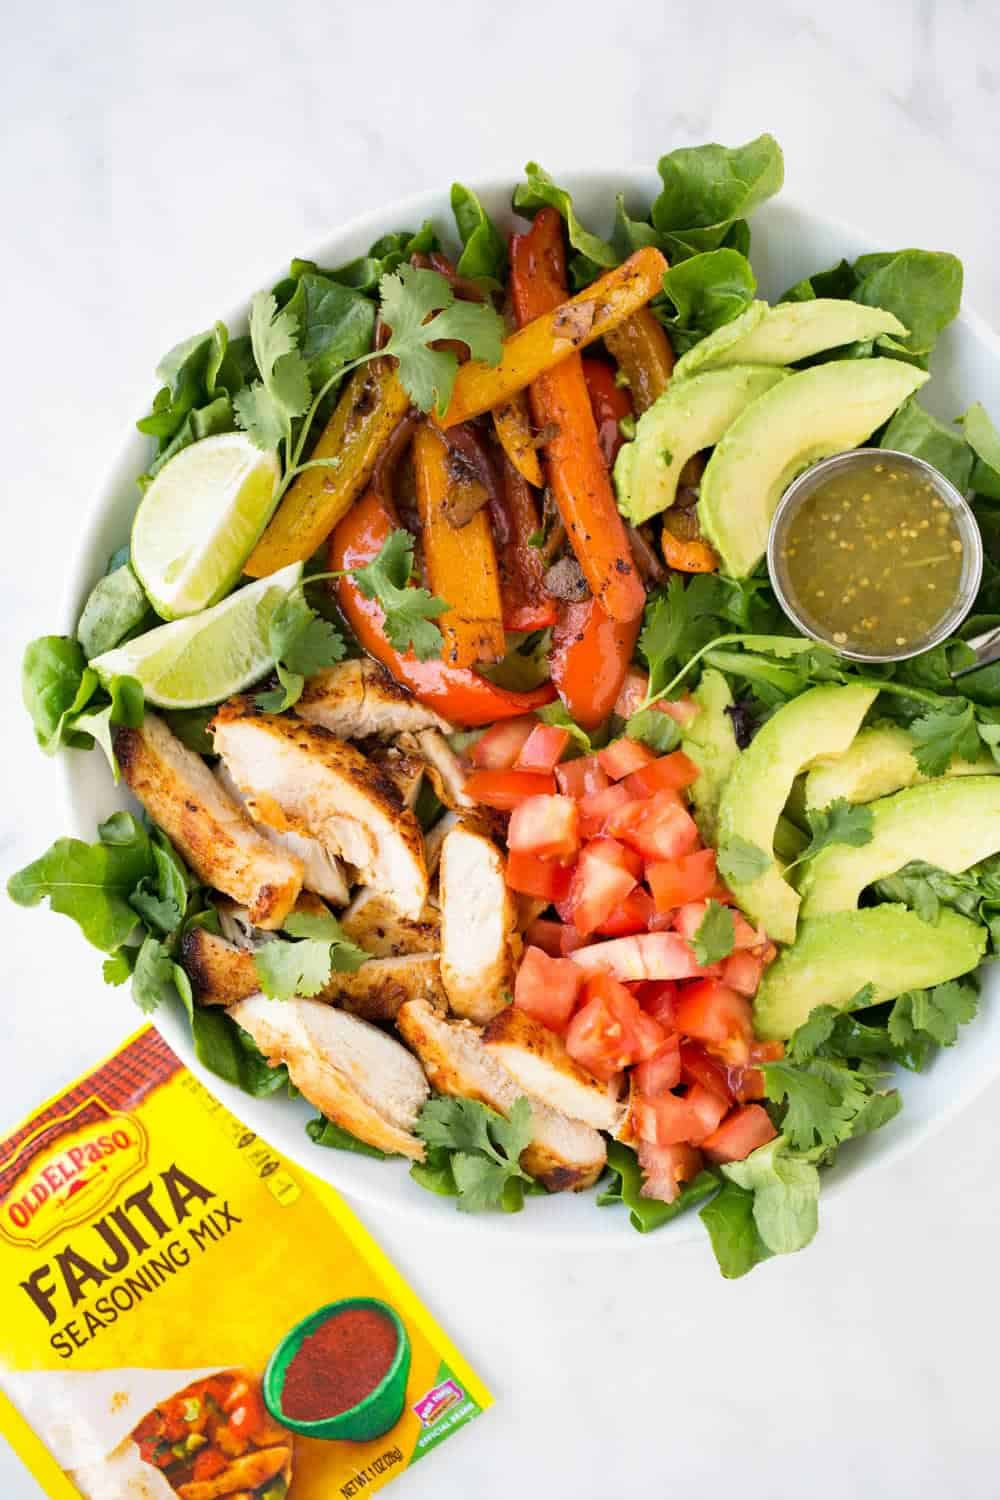 EASY Fajita salad recipe... done in 20 minutes or less. This salad is packed with flavorful chicken, veggies and green salsa. Perfect for a quick dinner or lunch!